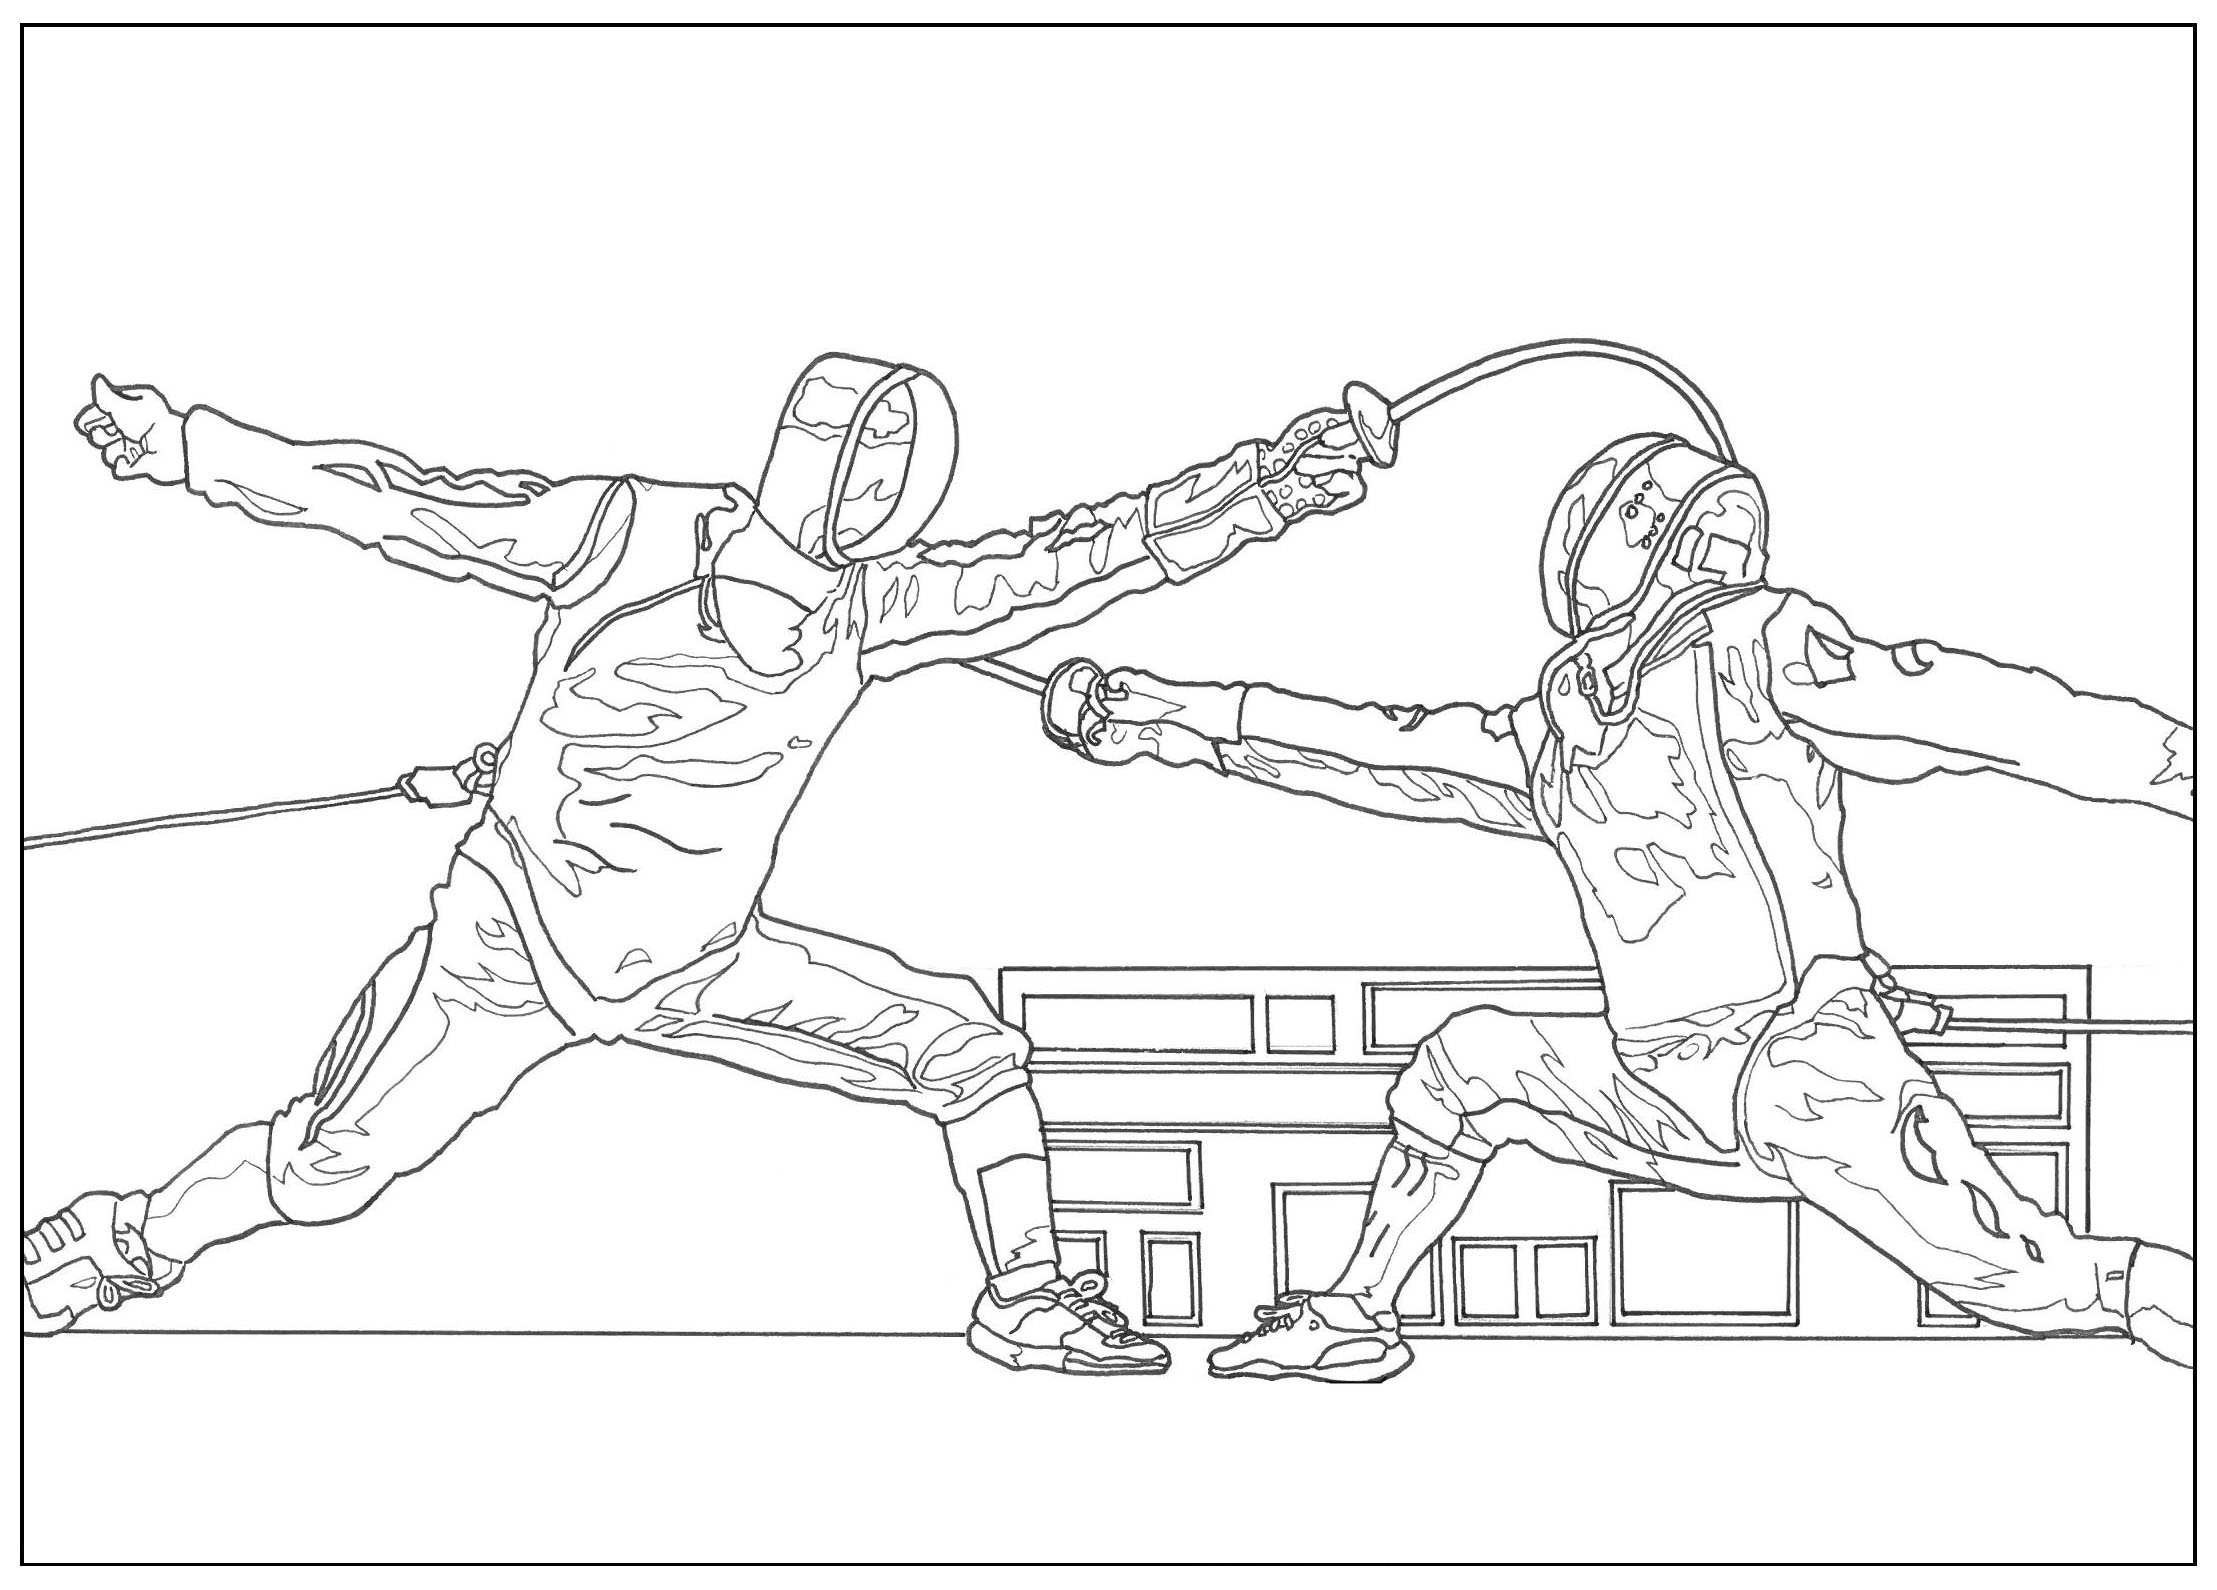 Sports coloring page to download